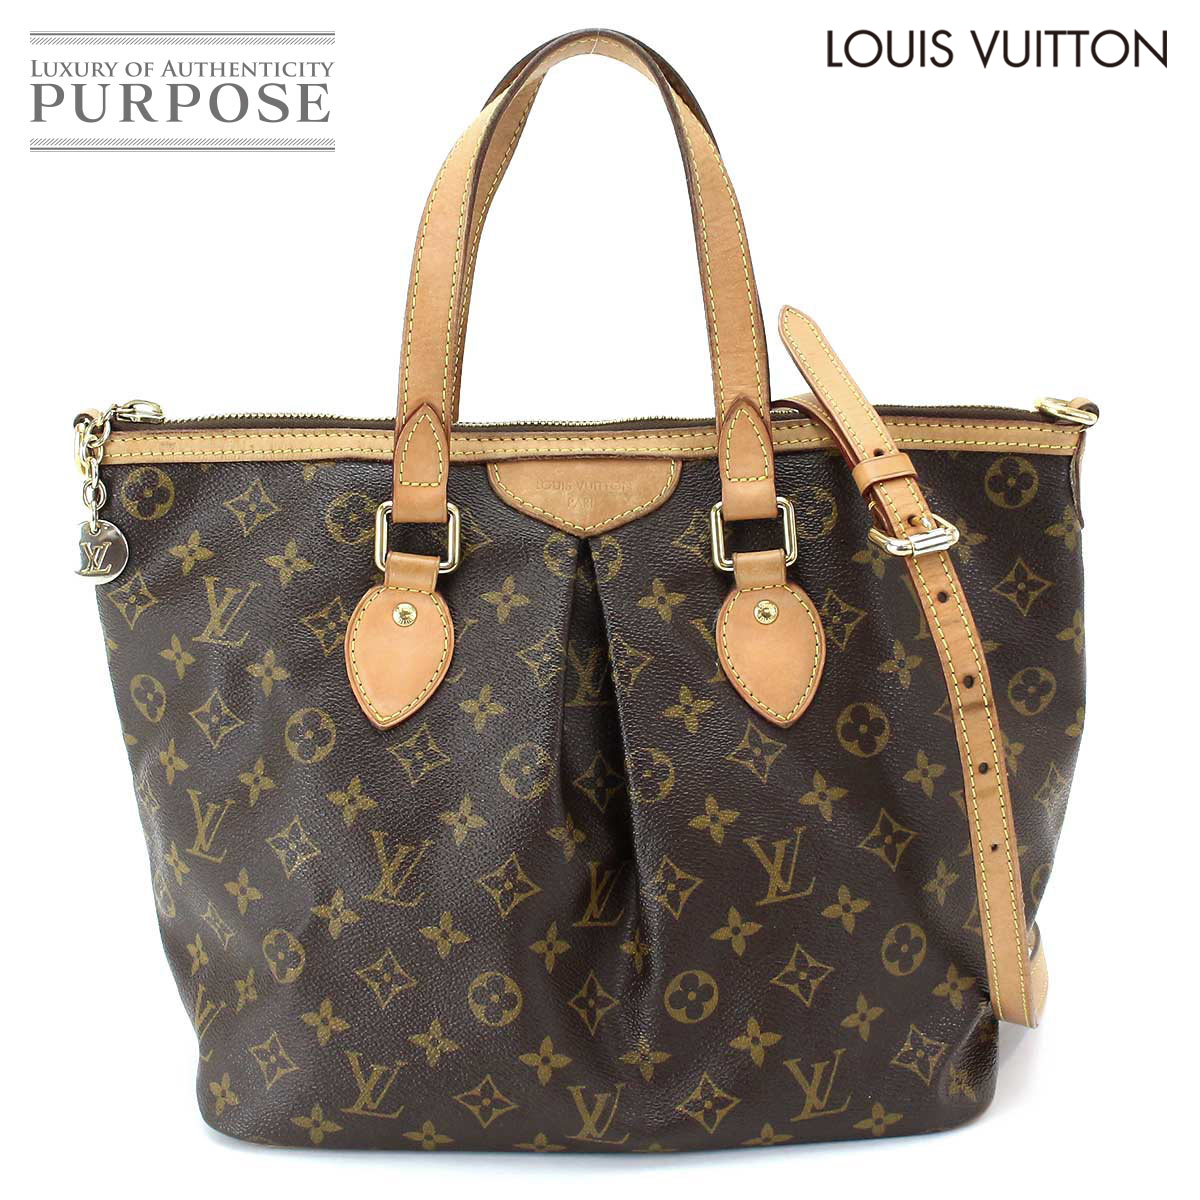 Louis Vuitton LOUIS VUITTON monogram Palermo PM 2way Thoth shoulder bag  canvas M40145  used  brand ecfac08d767cb